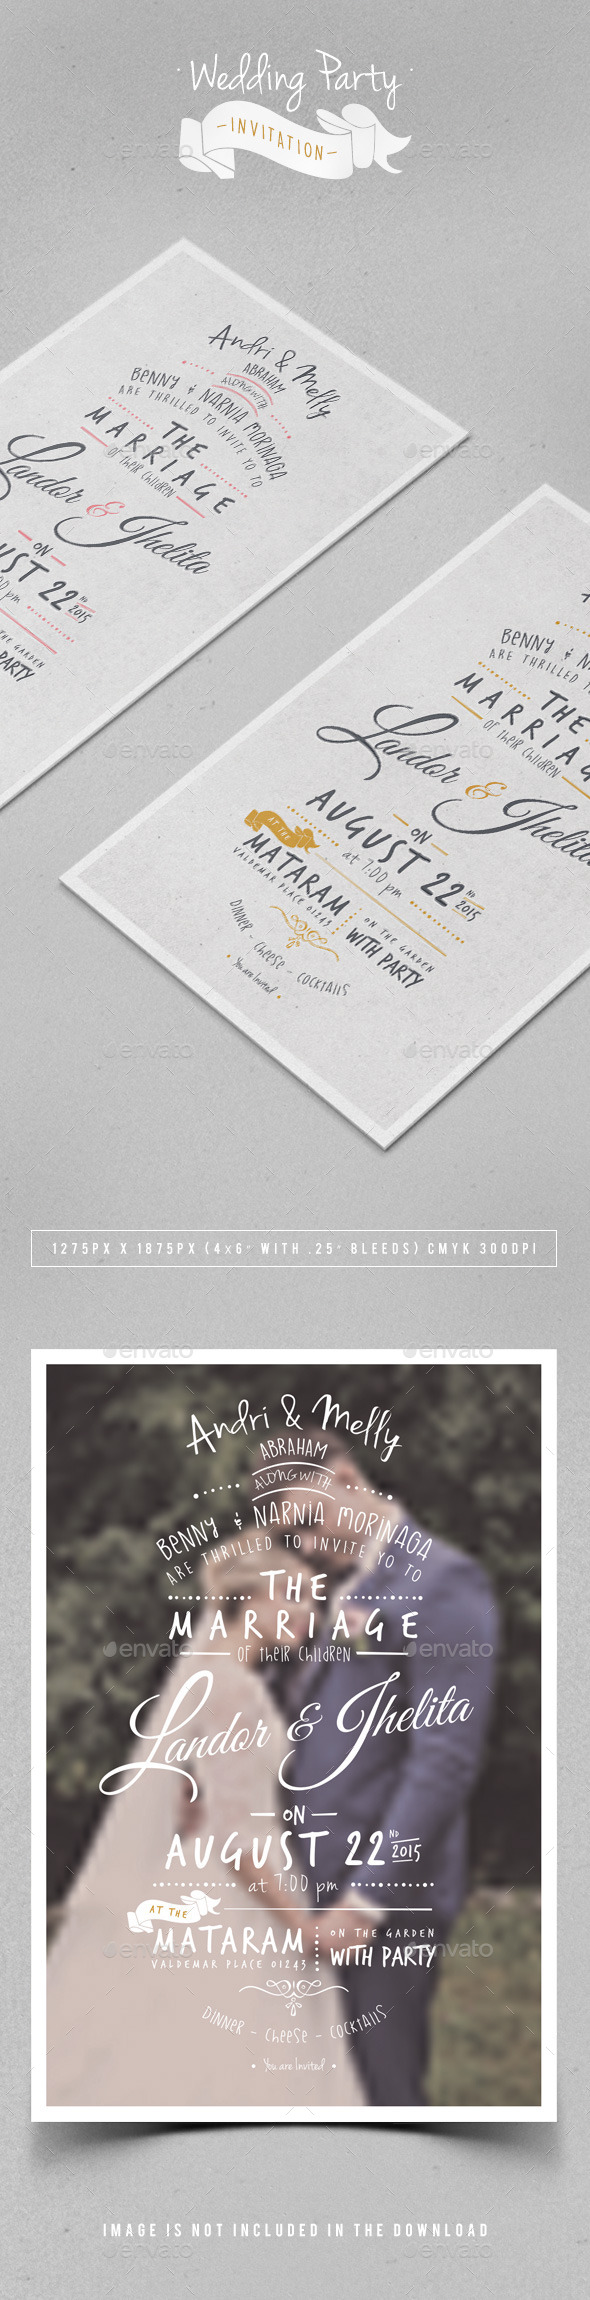 GraphicRiver Wedding Party Invitation 11202730